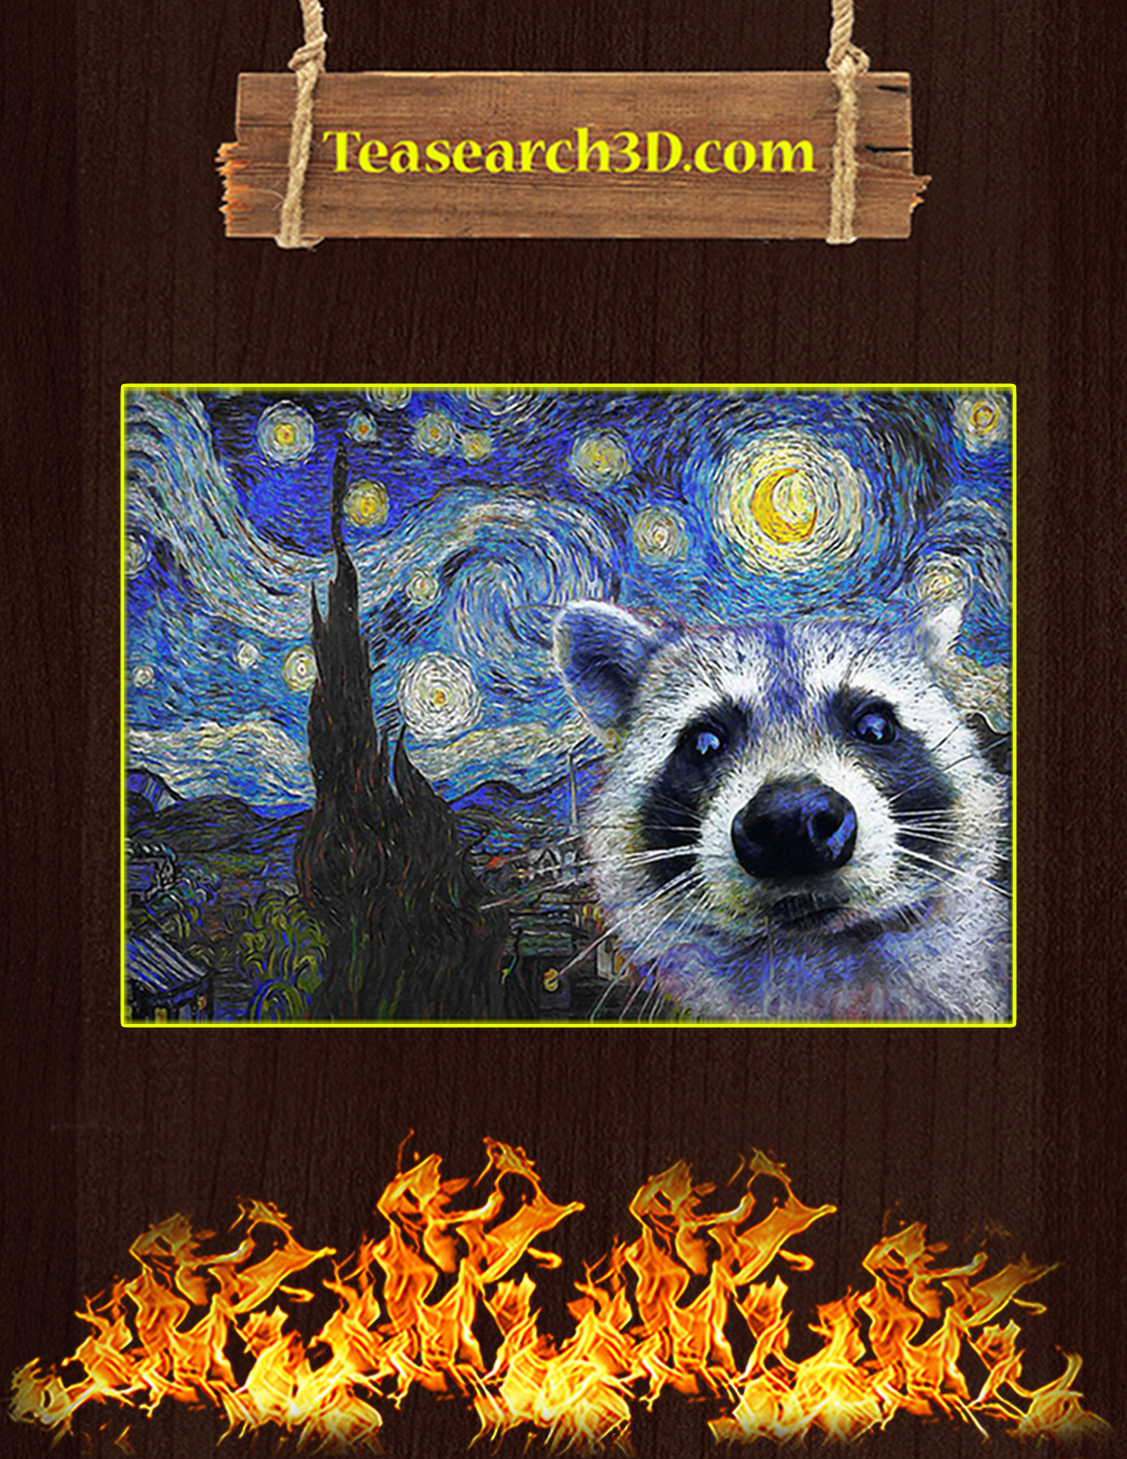 Racoon starry night van gogh poster A3